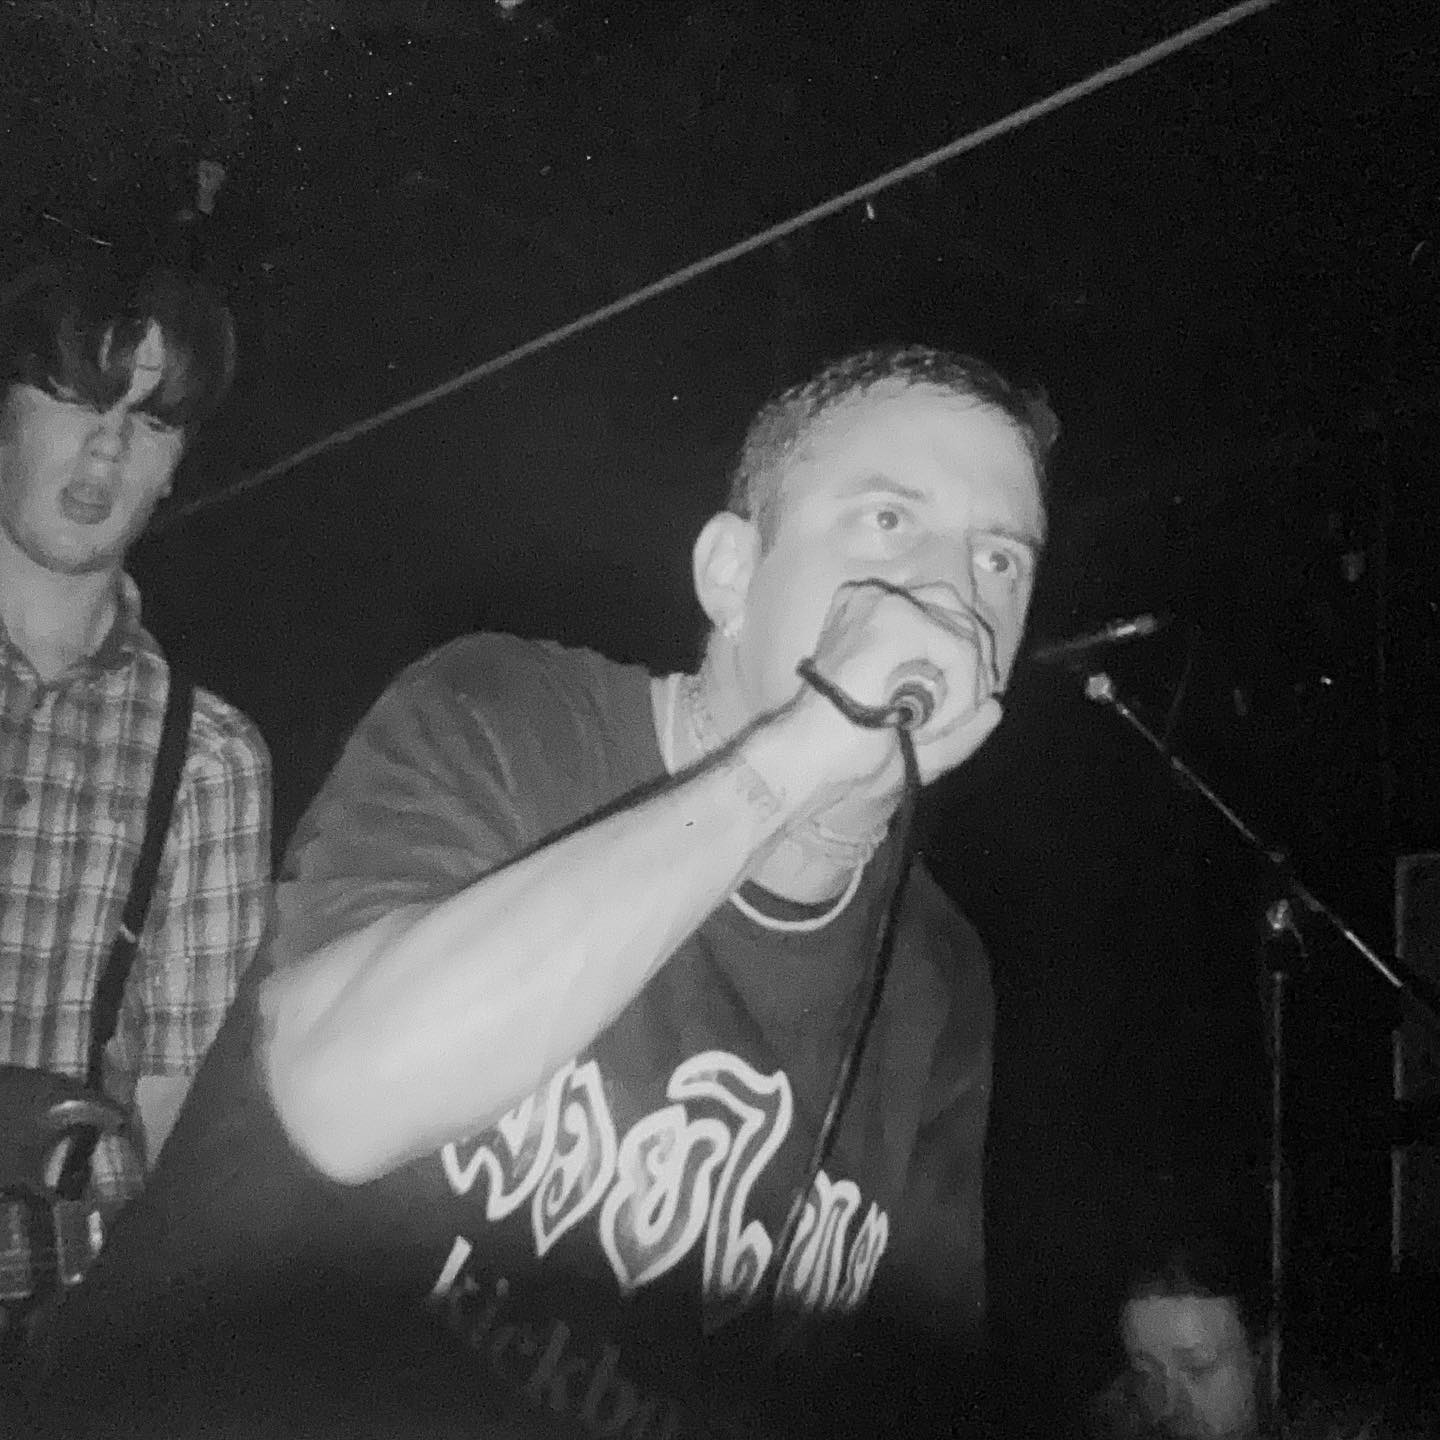 Shelter - Vera Groningen NL - 8 February 1996 #harekrishna #hardcore @shelter_band_official pic by @twentylandcrew